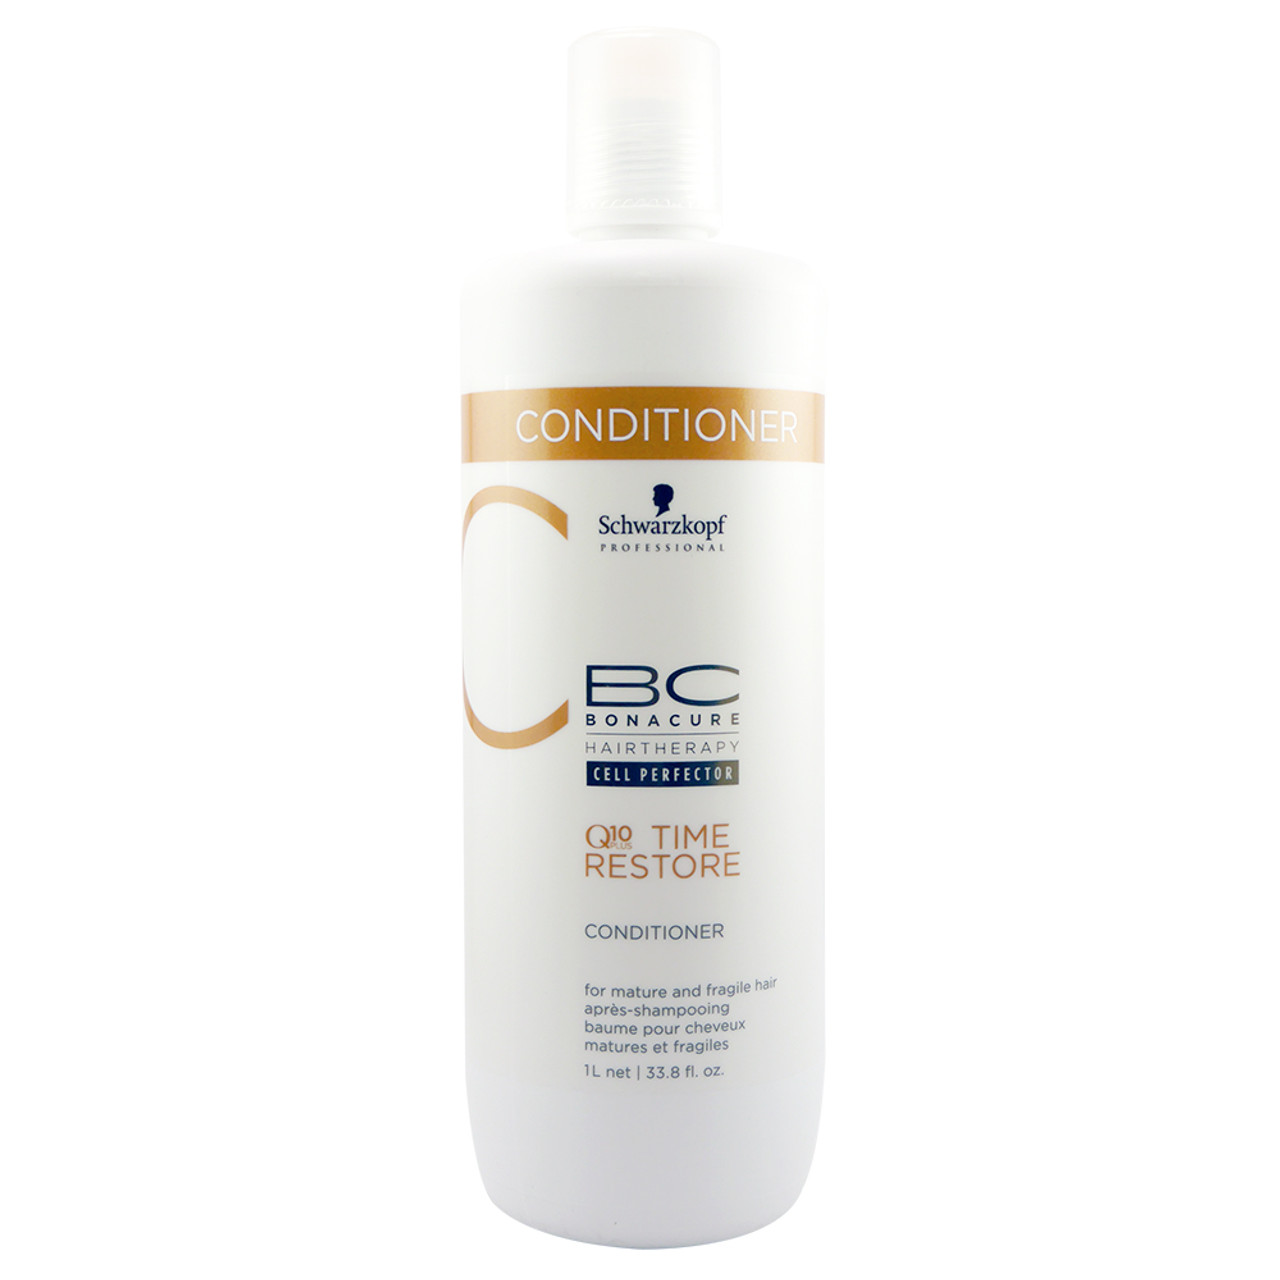 Bonacure Time Restore Q10 Conditioner 1L